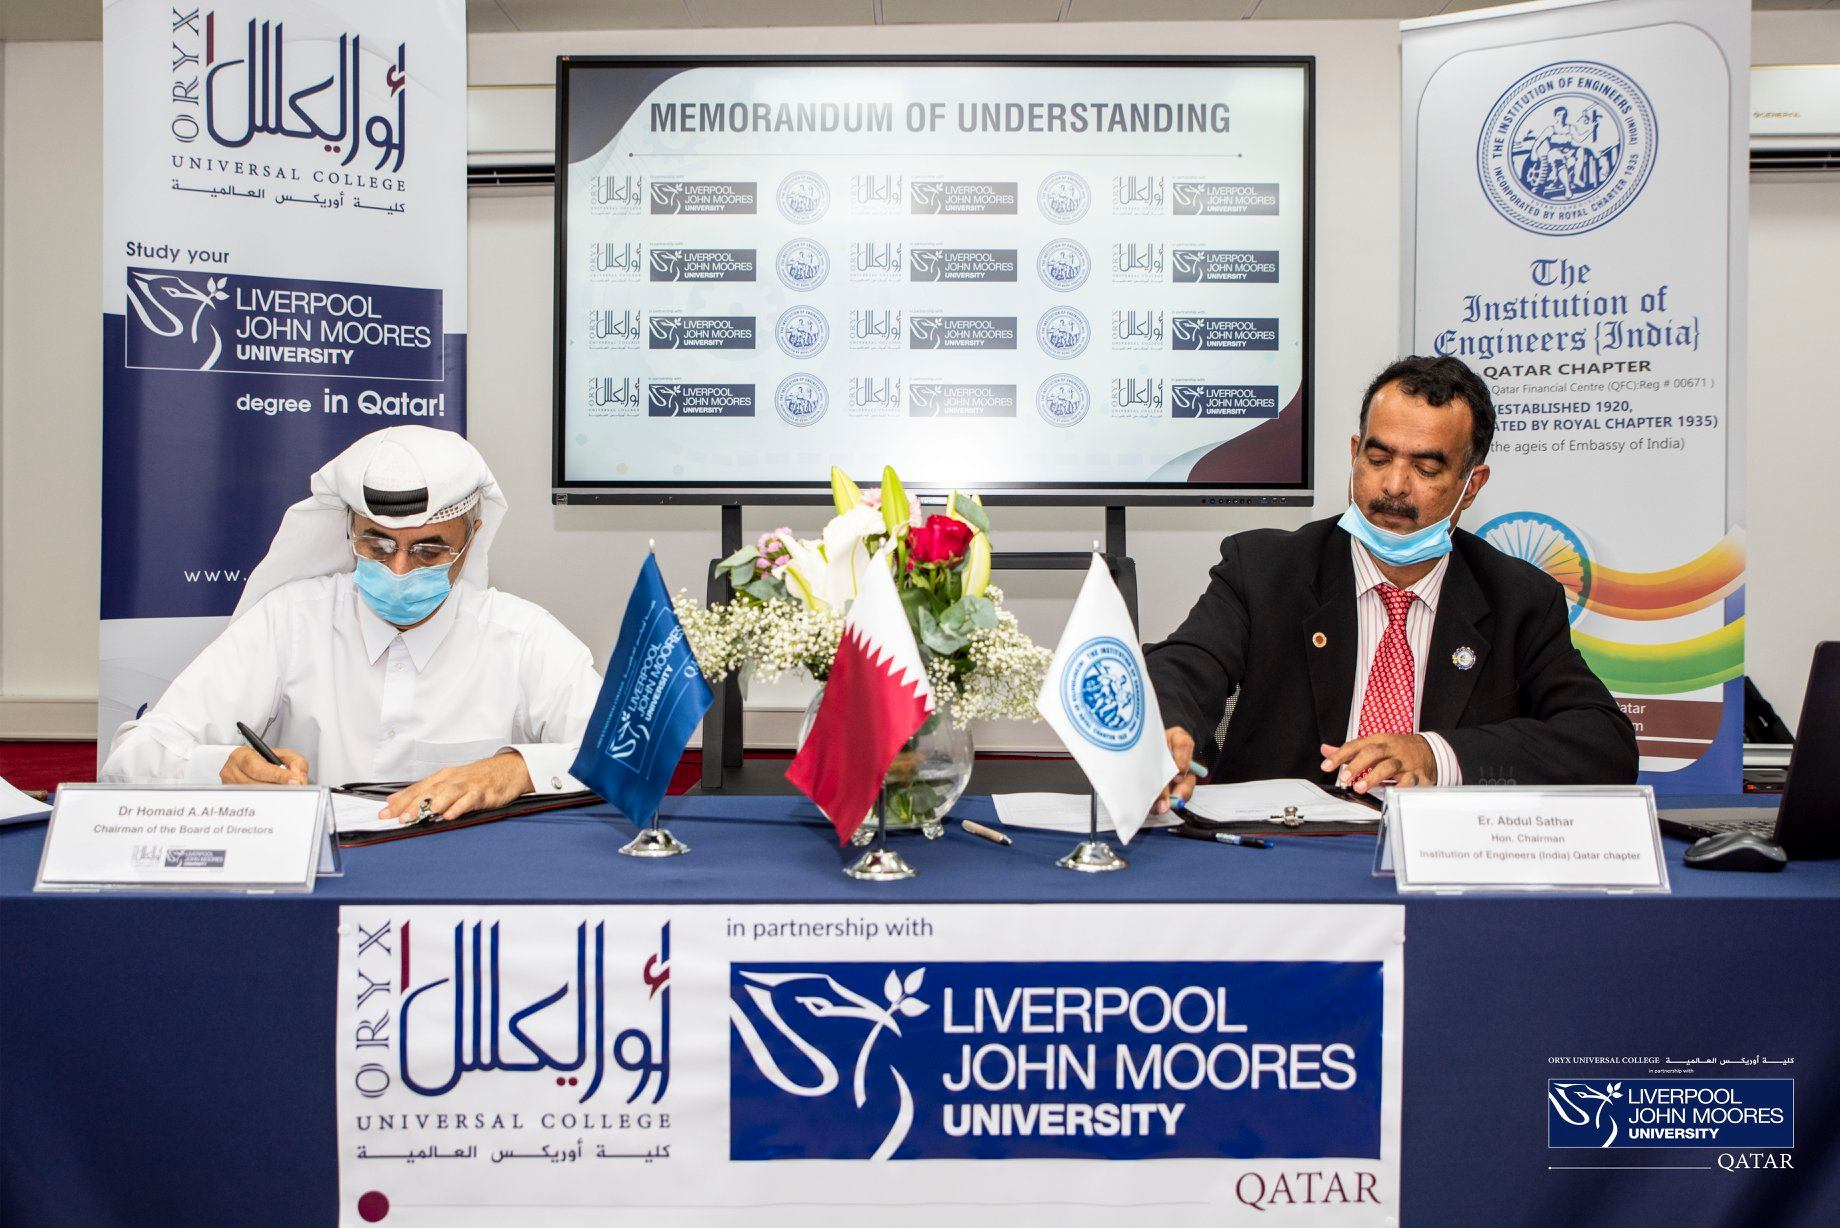 MOU signed between Oryx Universal College, in partnership with Liverpool John Moores University, and